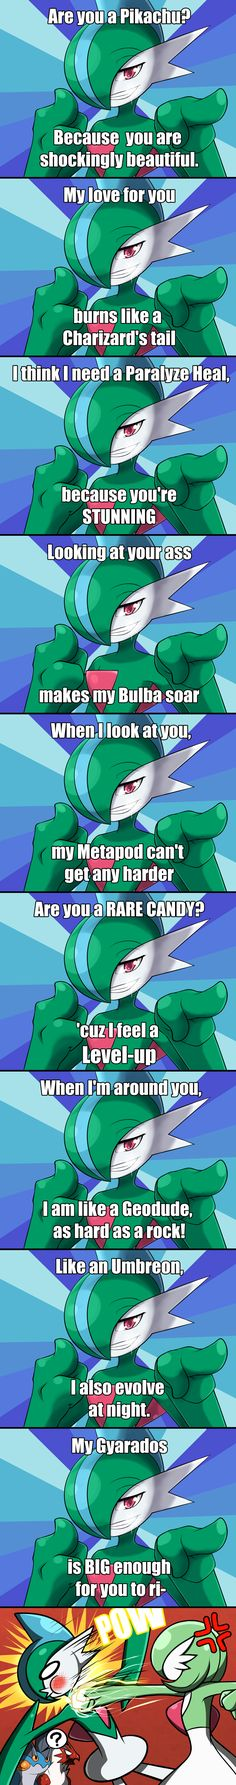 Pokemon Pick-up Lines - feat. Gallade by Mgx0 on DeviantArt